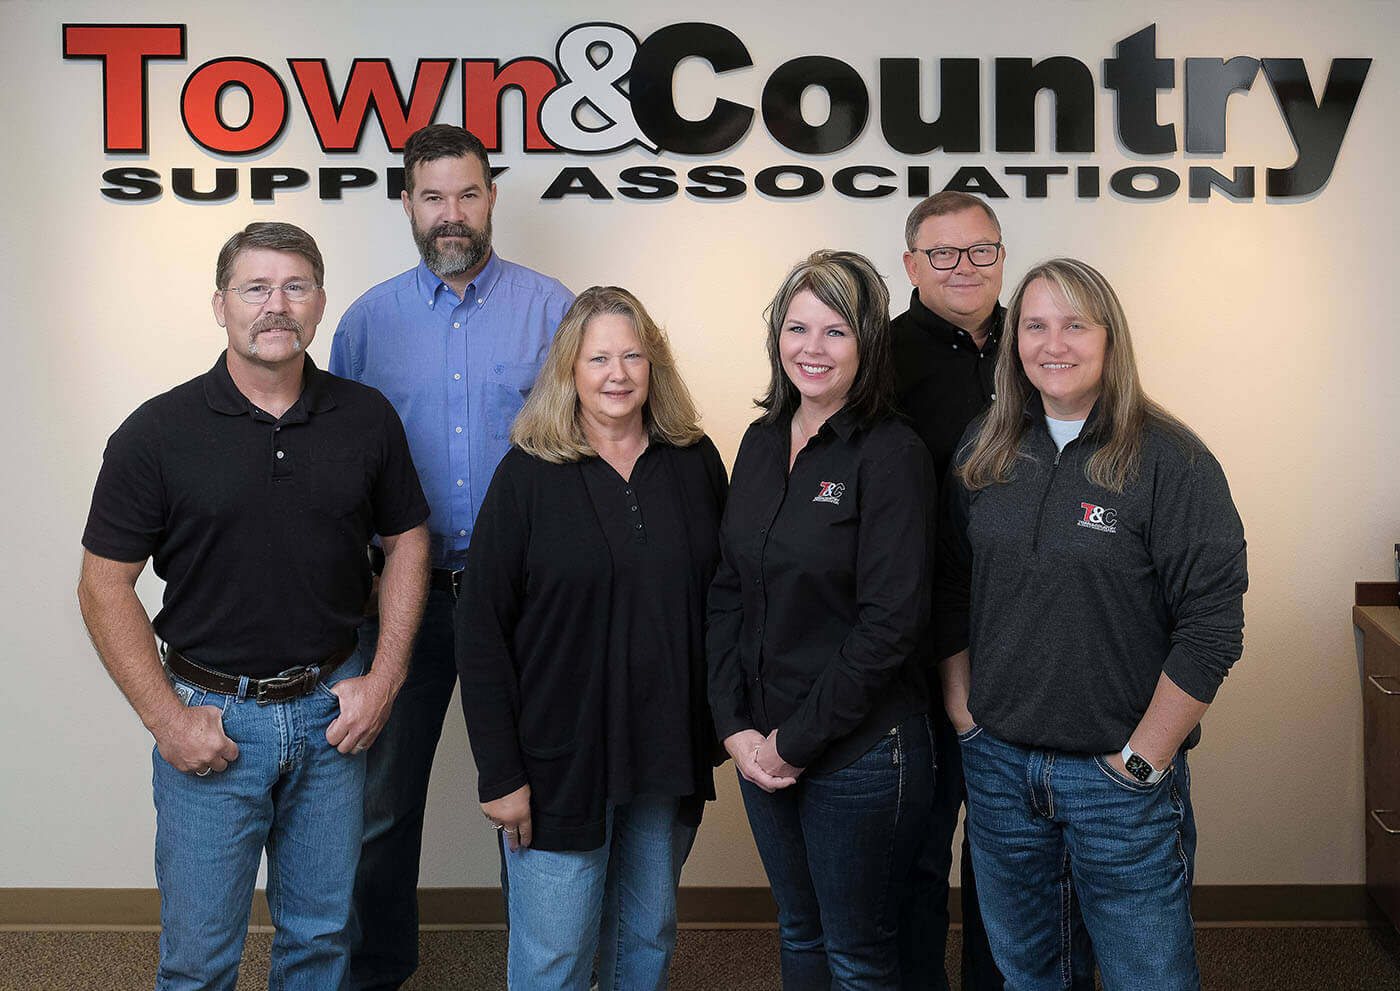 Town and Country Staff 2020 - About Us